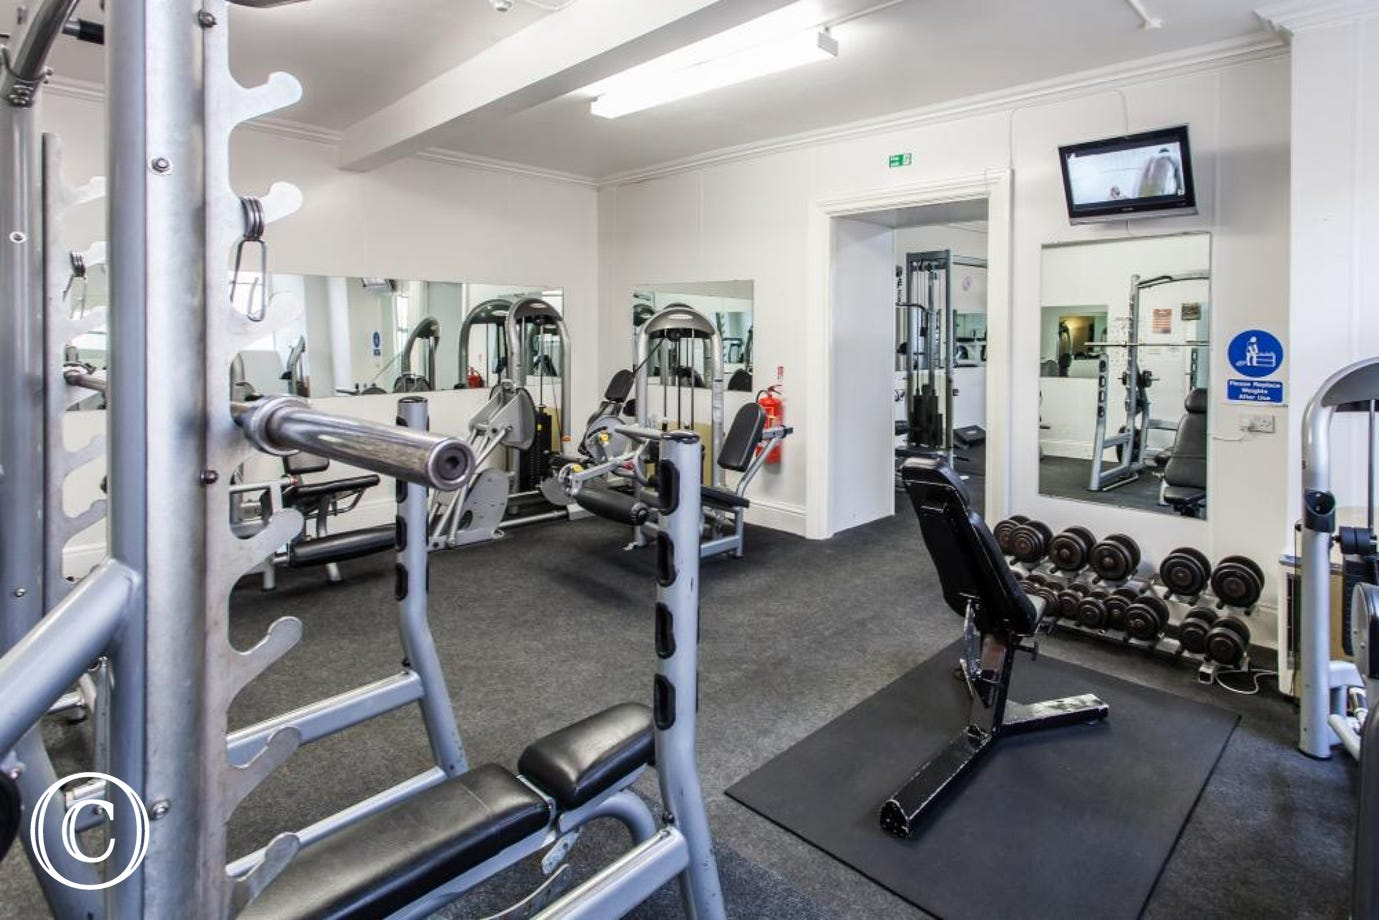 Meadfoot Beach Apartment, Torquay - Gym 2